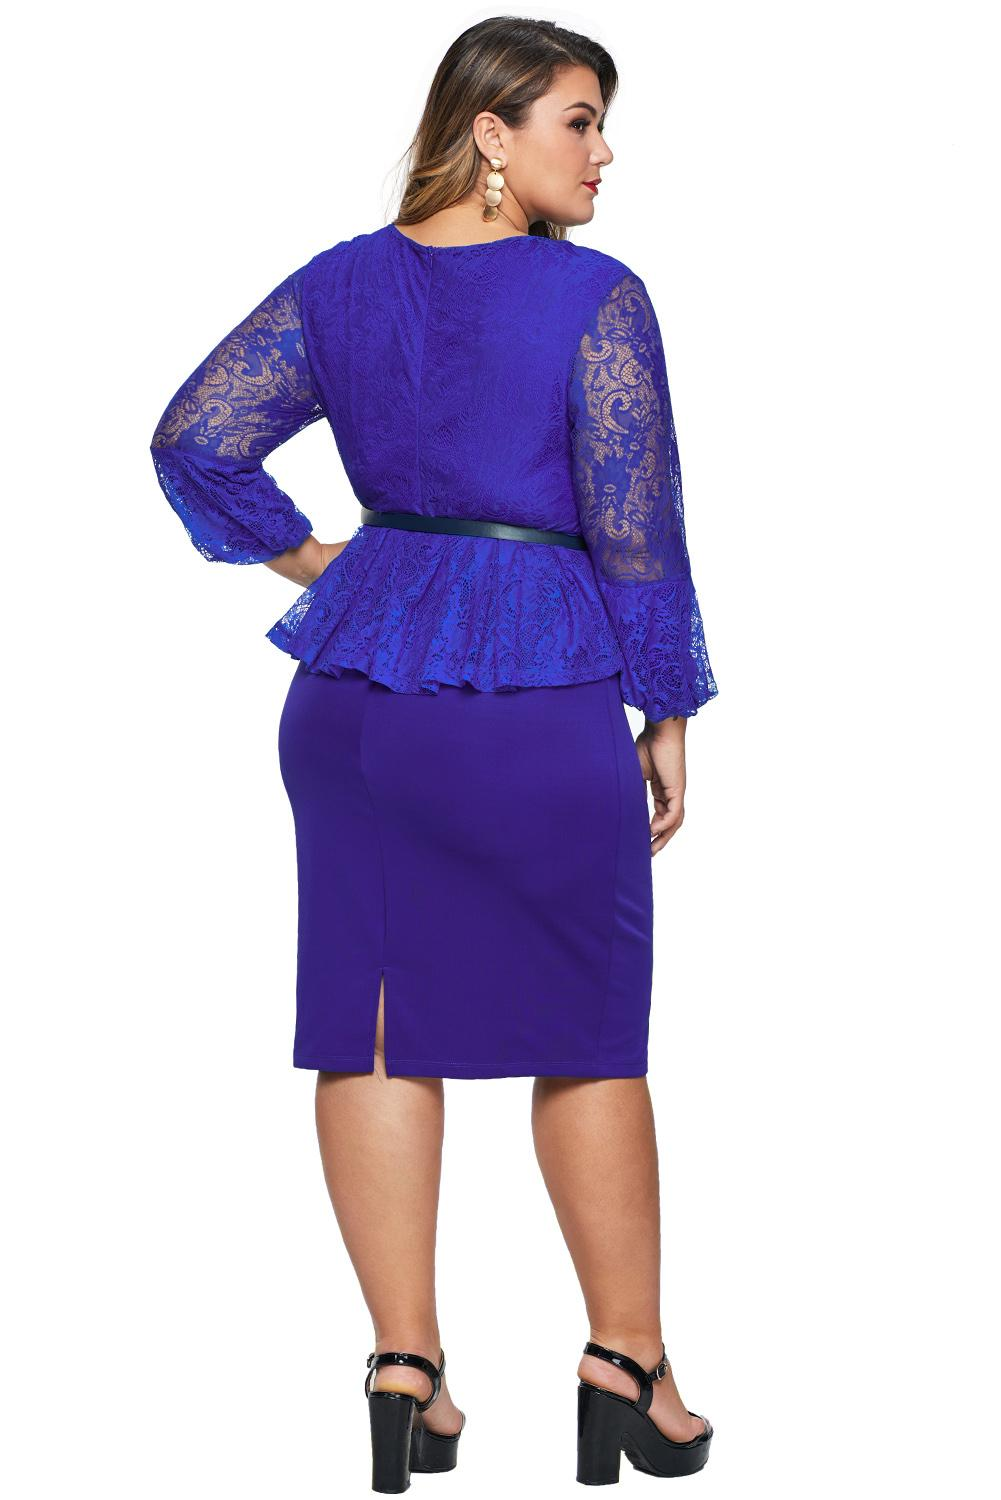 Blue Plus Size Lace Bodice Peplum Dress with Belt Plus Size Dresses Discount Designer Fashion Clothes Shoes Bags Women Men Kids Children Black Owned Business